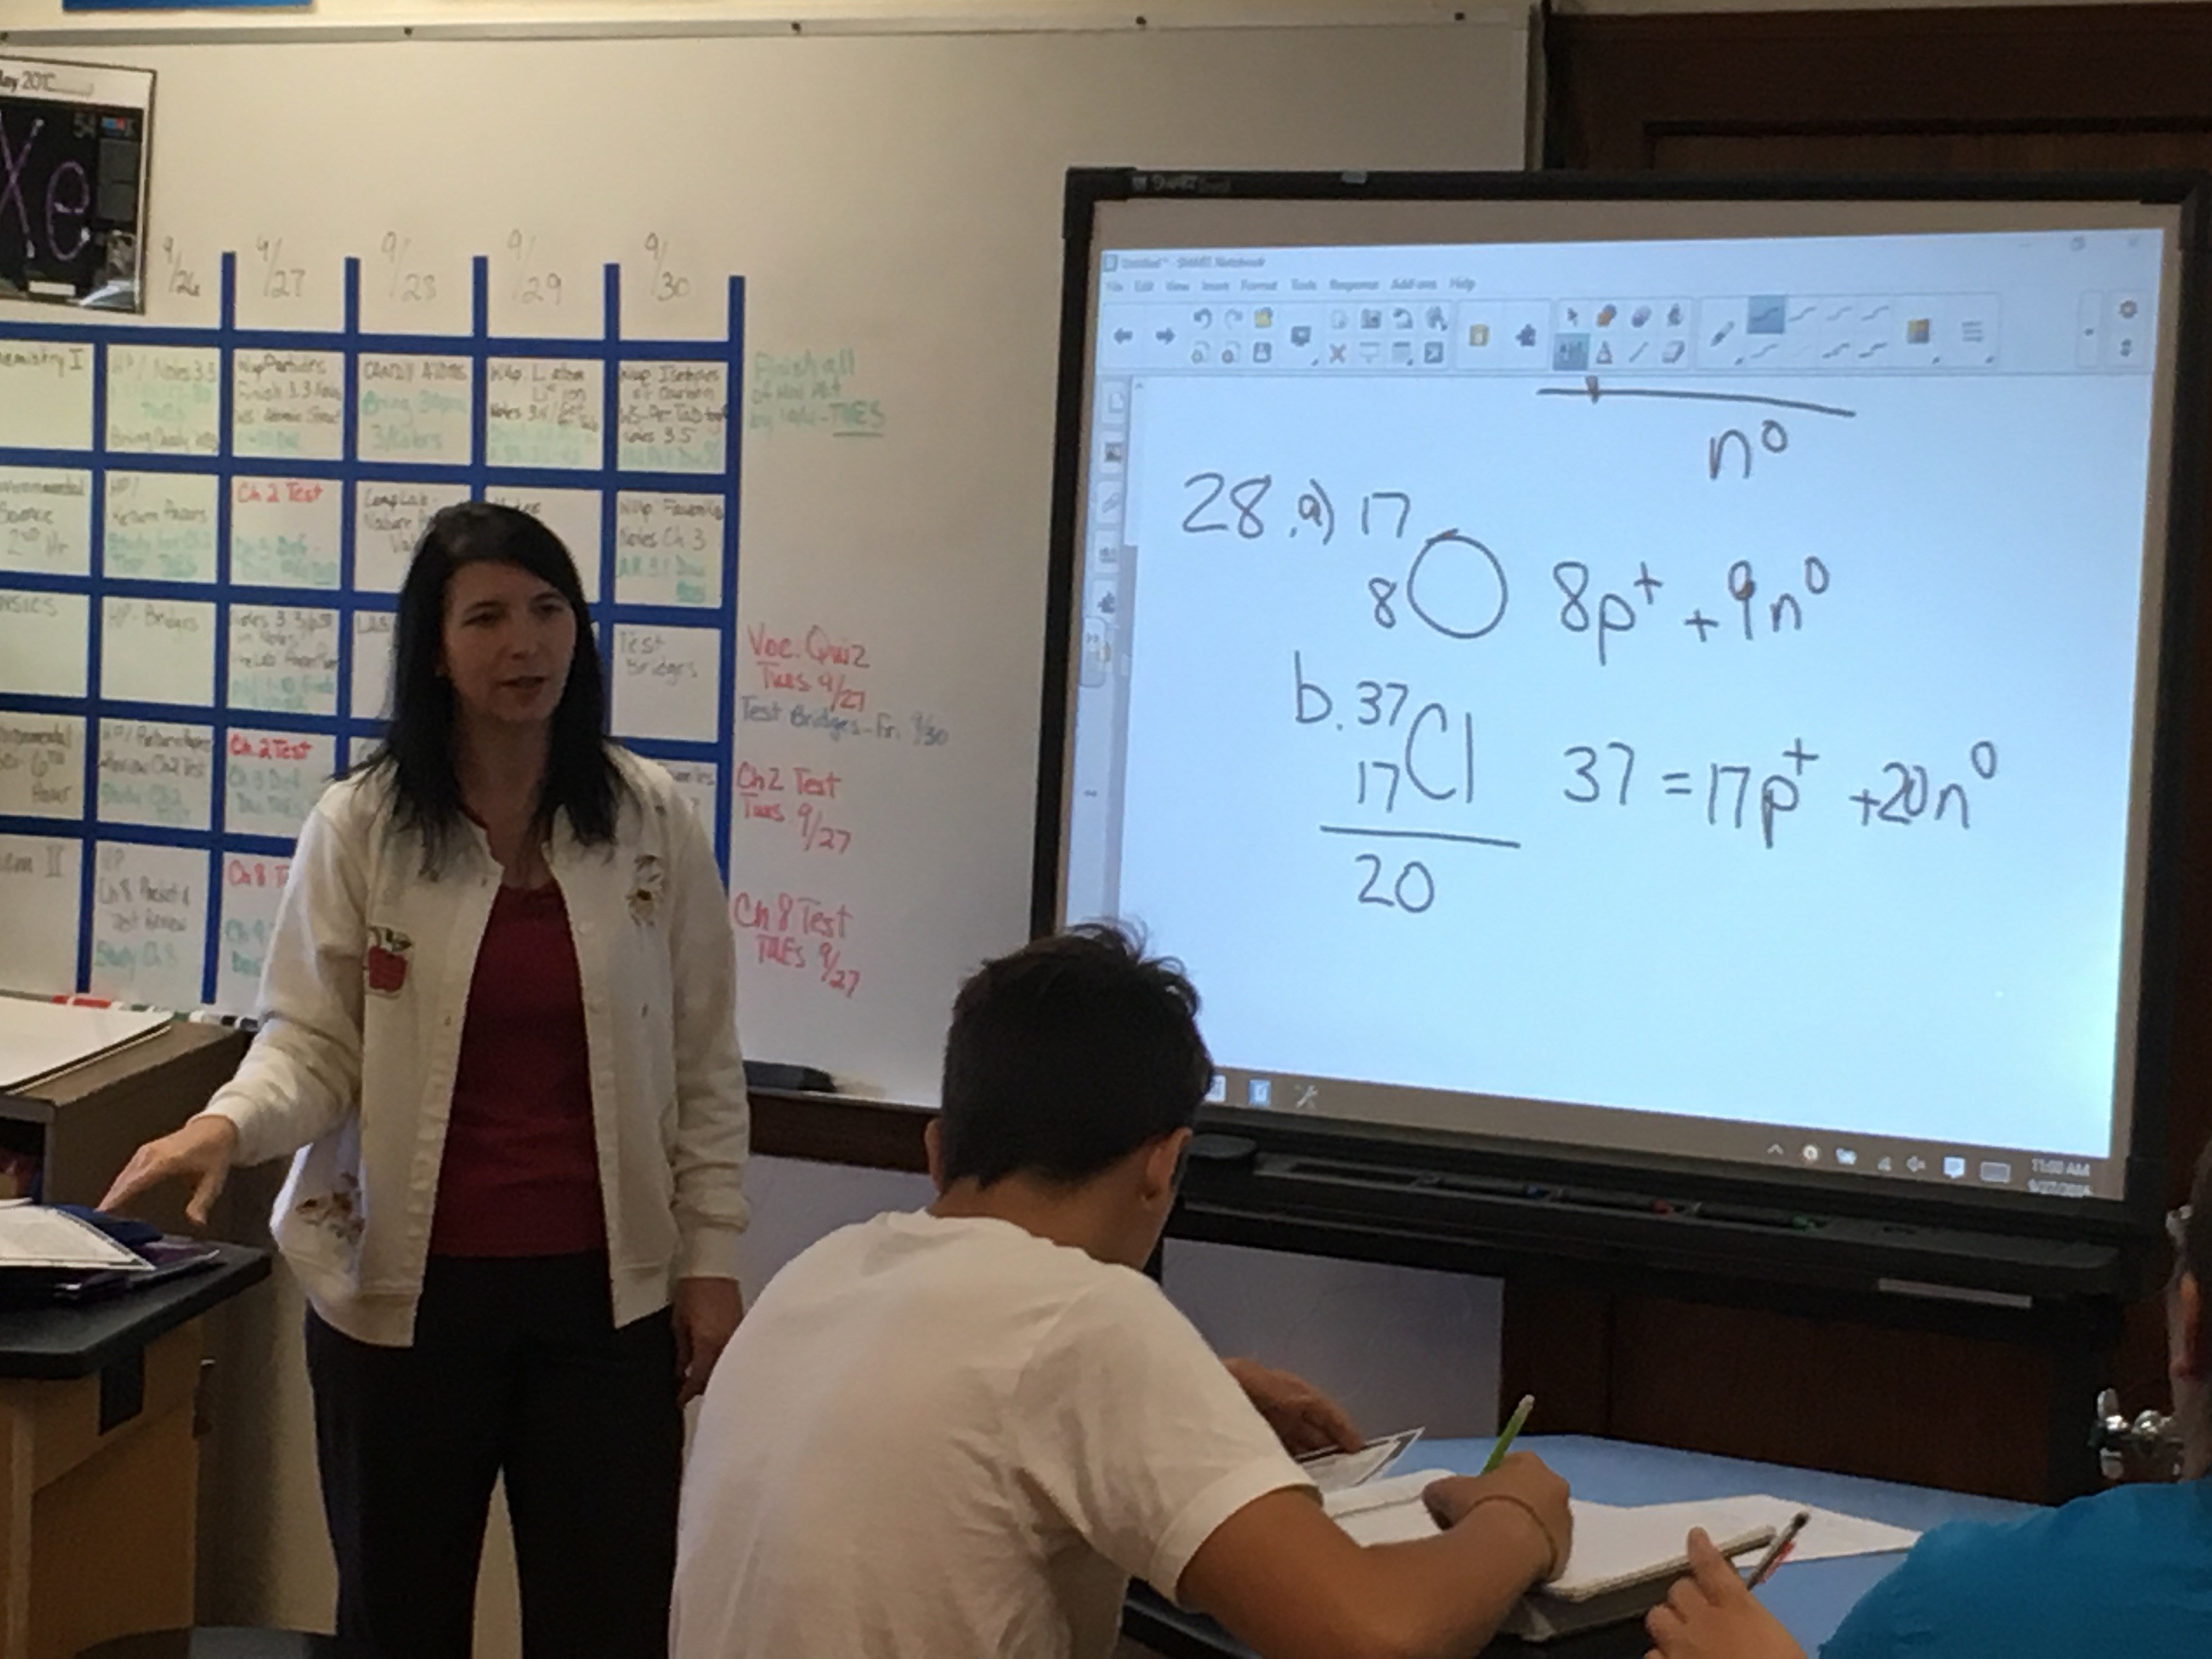 Laura Dukett has taught chemistry and physics at Winchester High School since 1995.